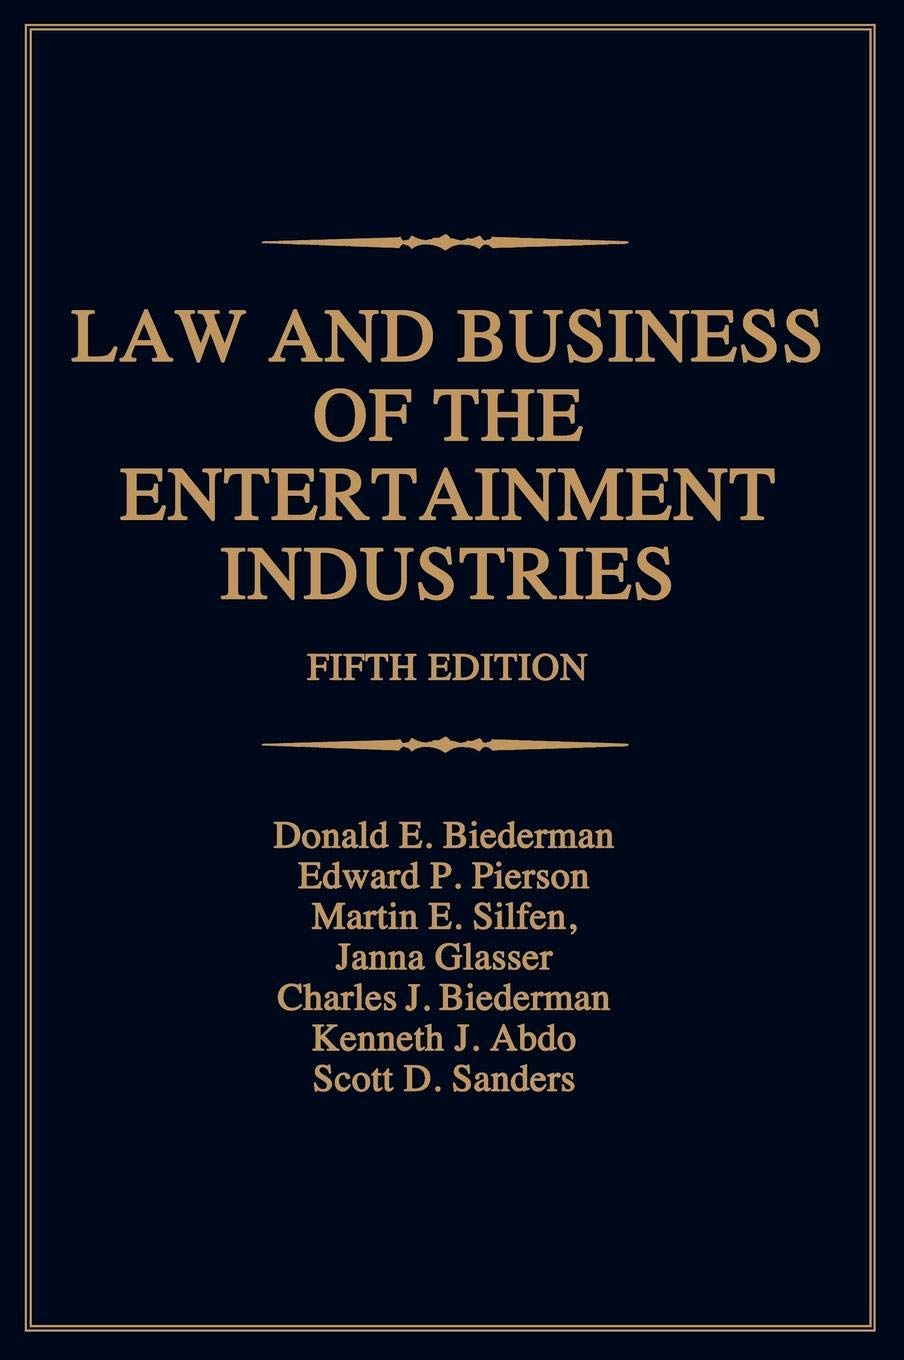 Law and Business of the Entertainment